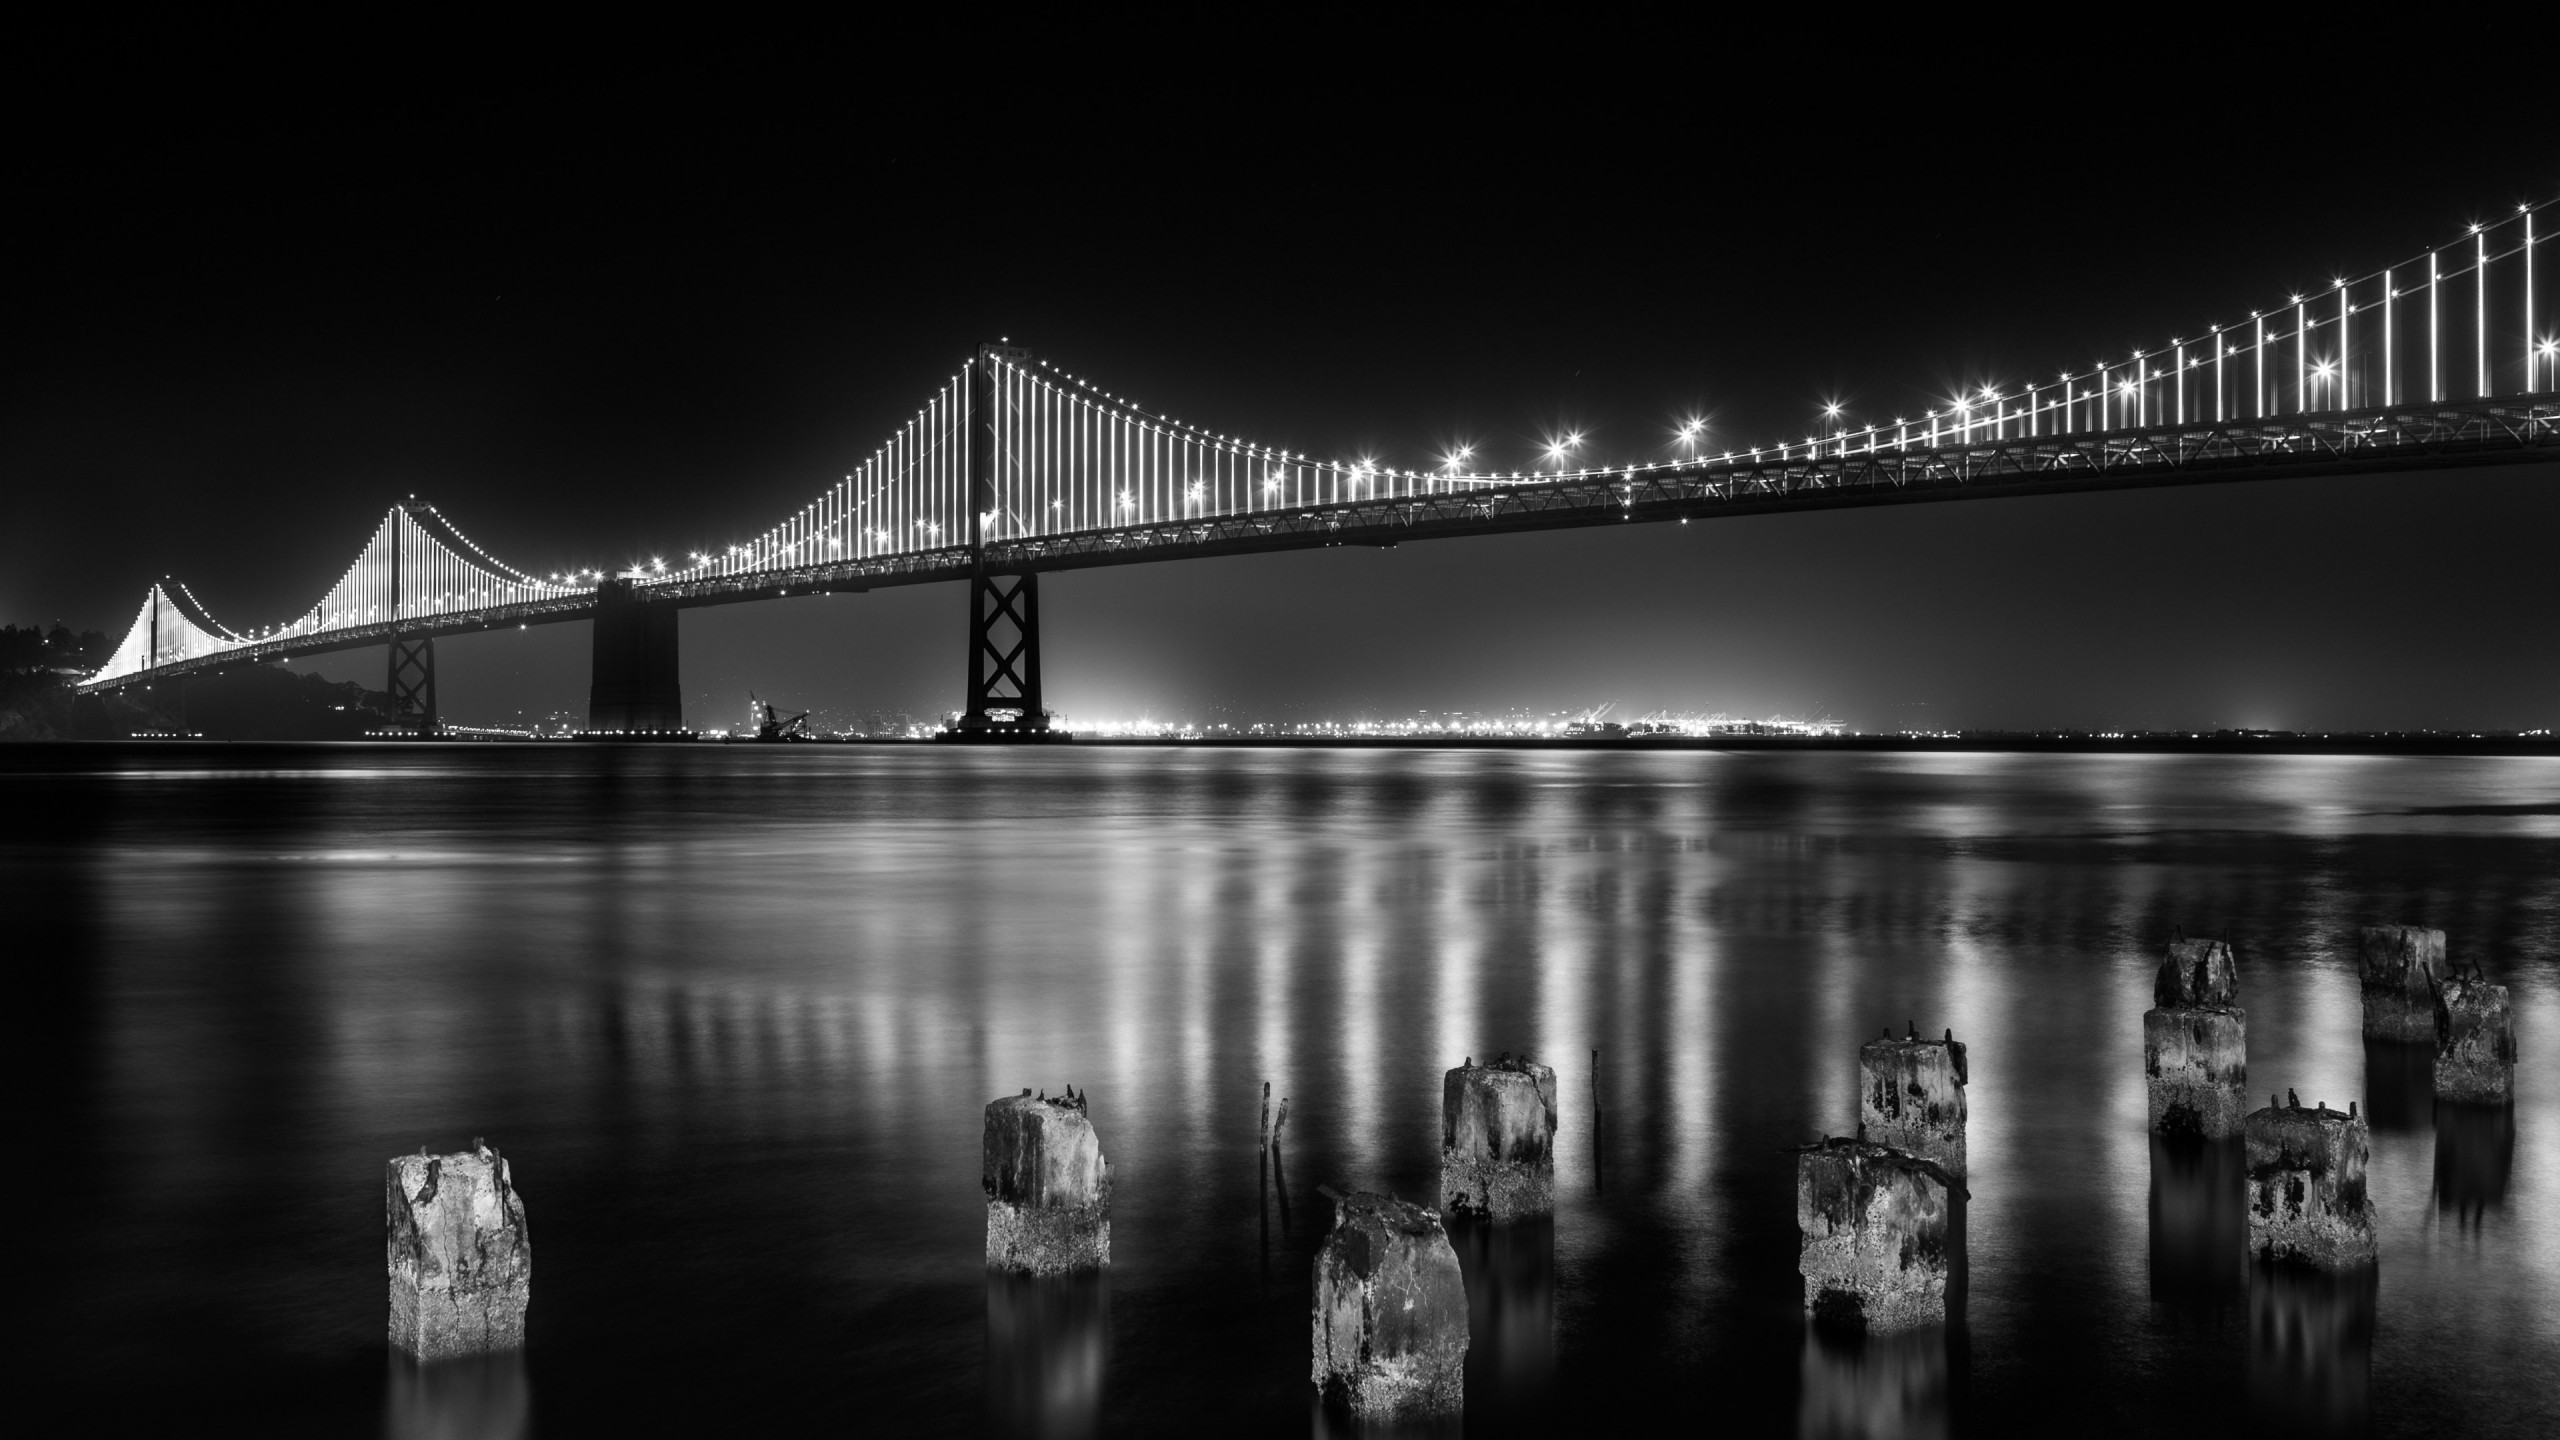 Download Wallpaper Bay Bridge From San Francisco 2560x1440